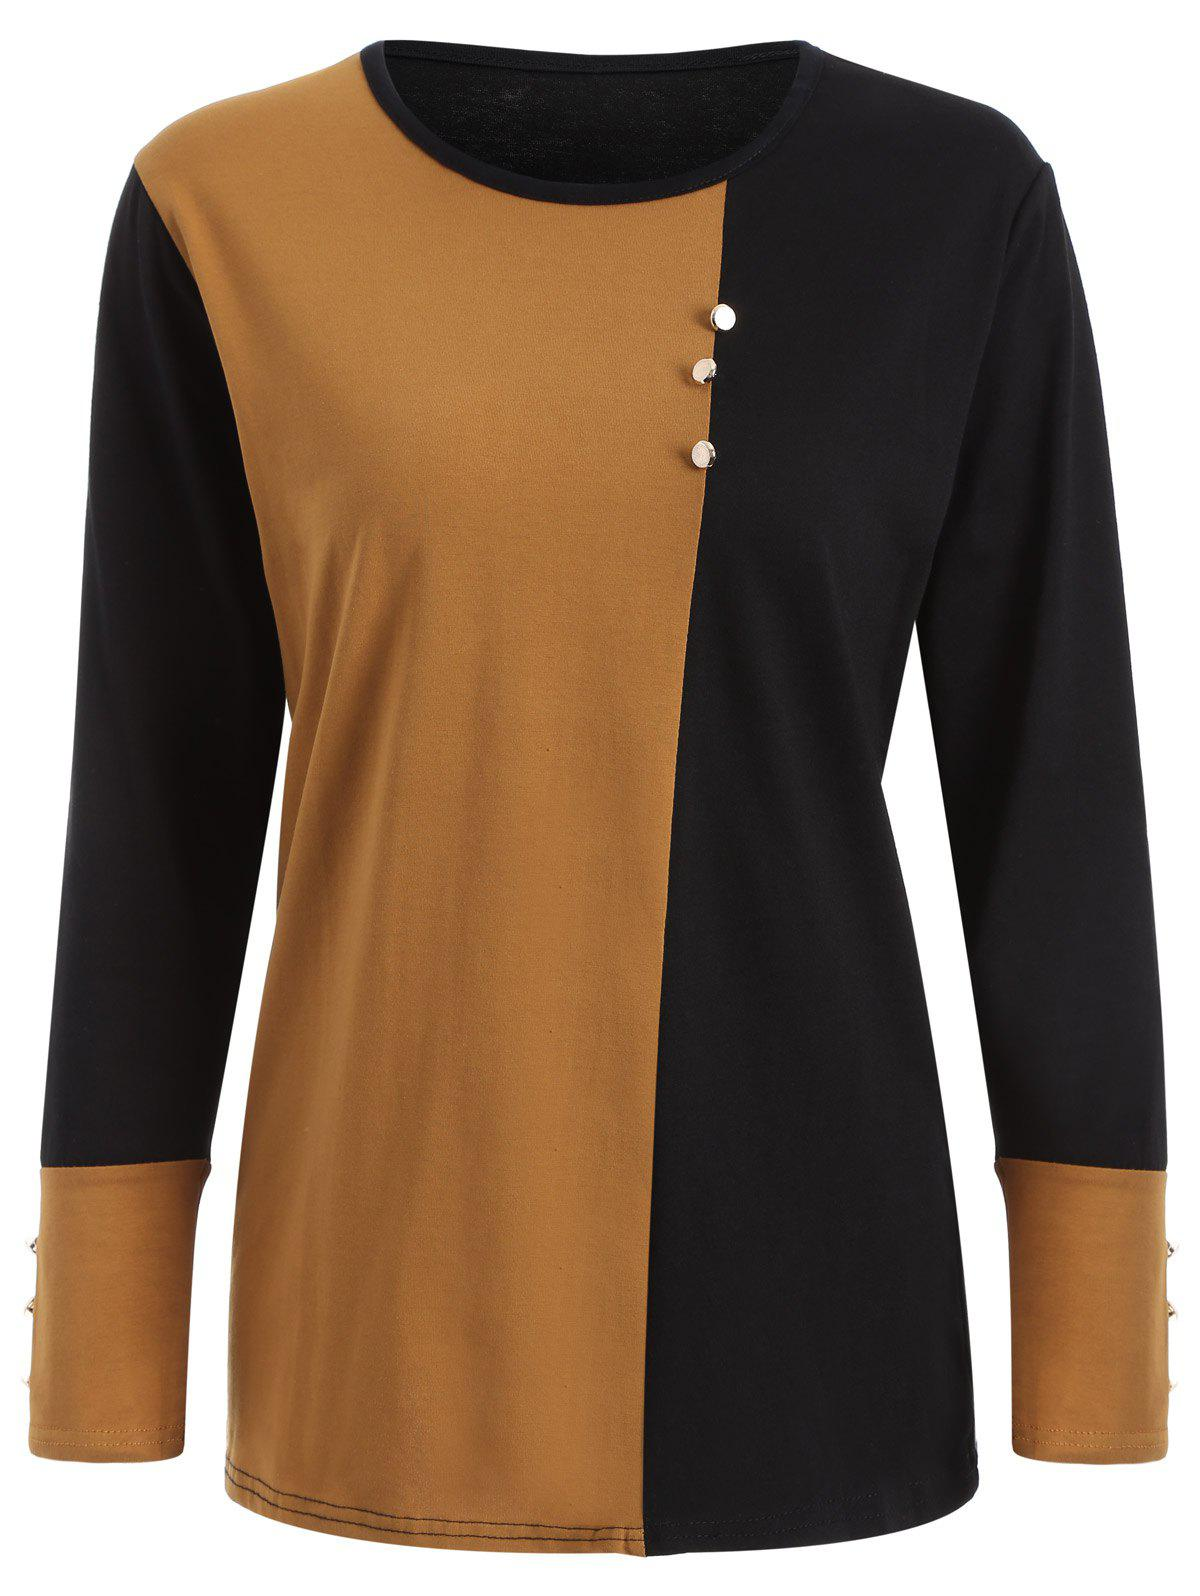 Plus Size Panel T-Shirt with Buttons - LIGHT COFFEE XL